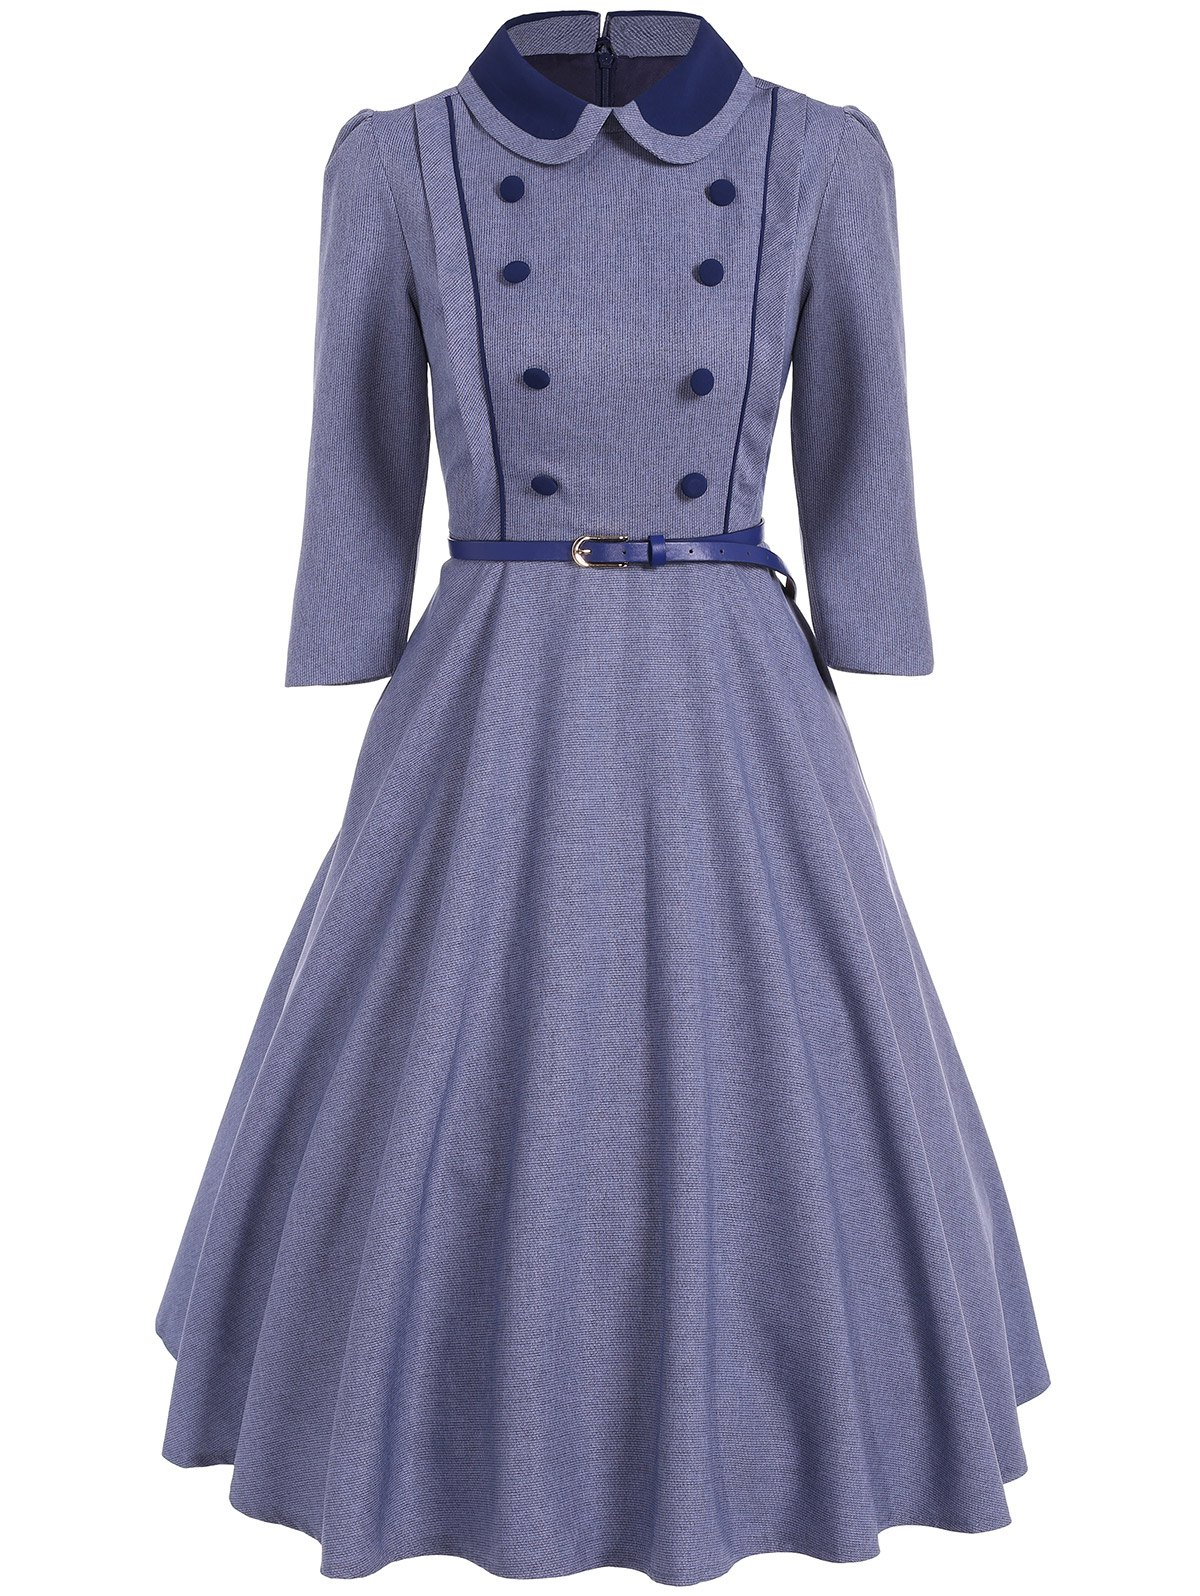 Double Breasted A Line Vintage DressWomen<br><br><br>Size: S<br>Color: STONE BLUE